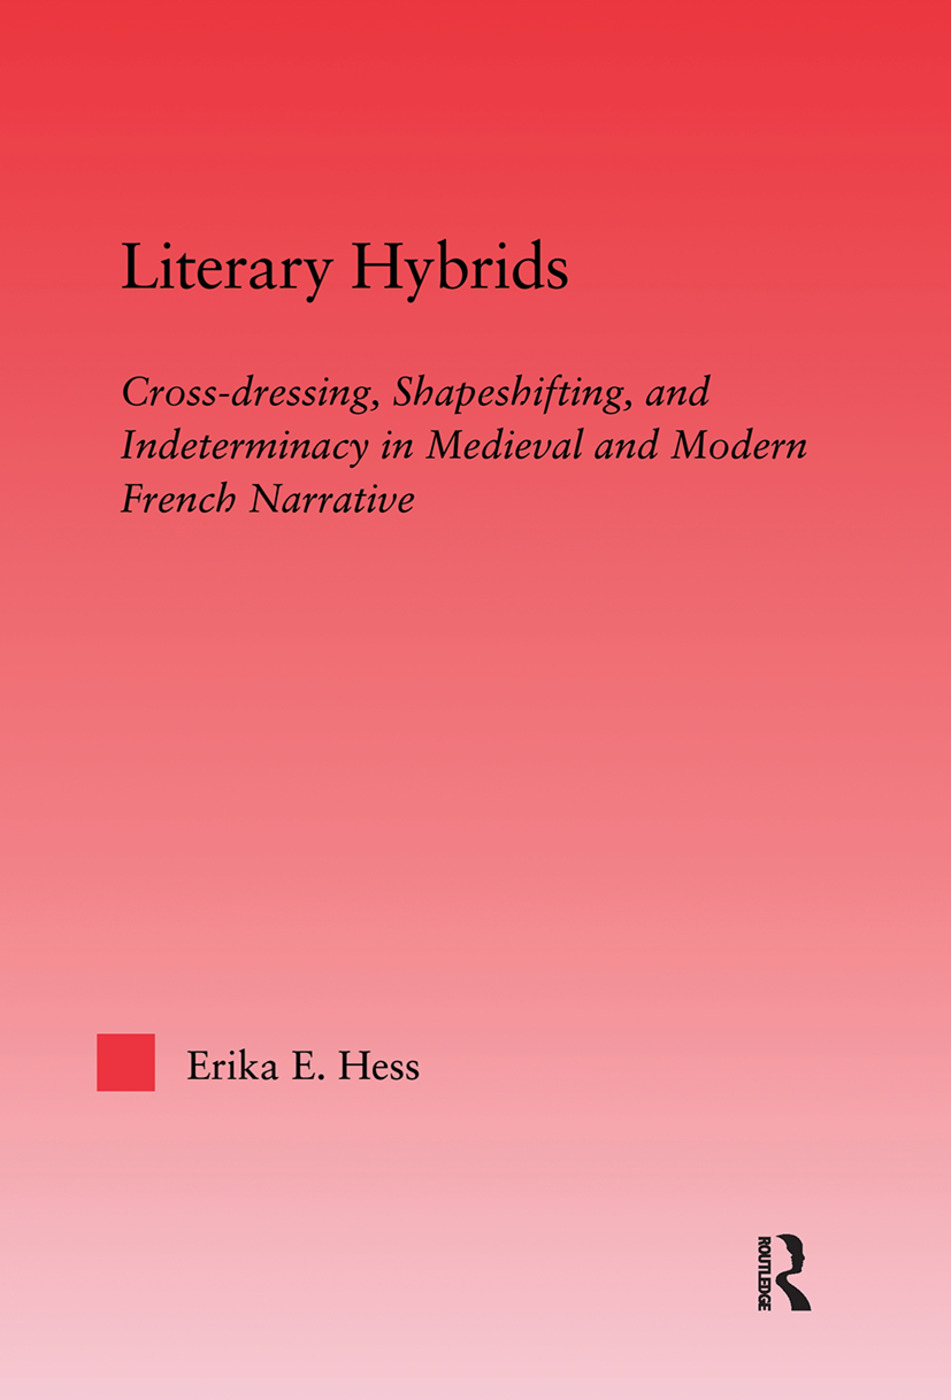 Literary Hybrids: Indeterminacy in Medieval & Modern French Narrative (Hardback) book cover